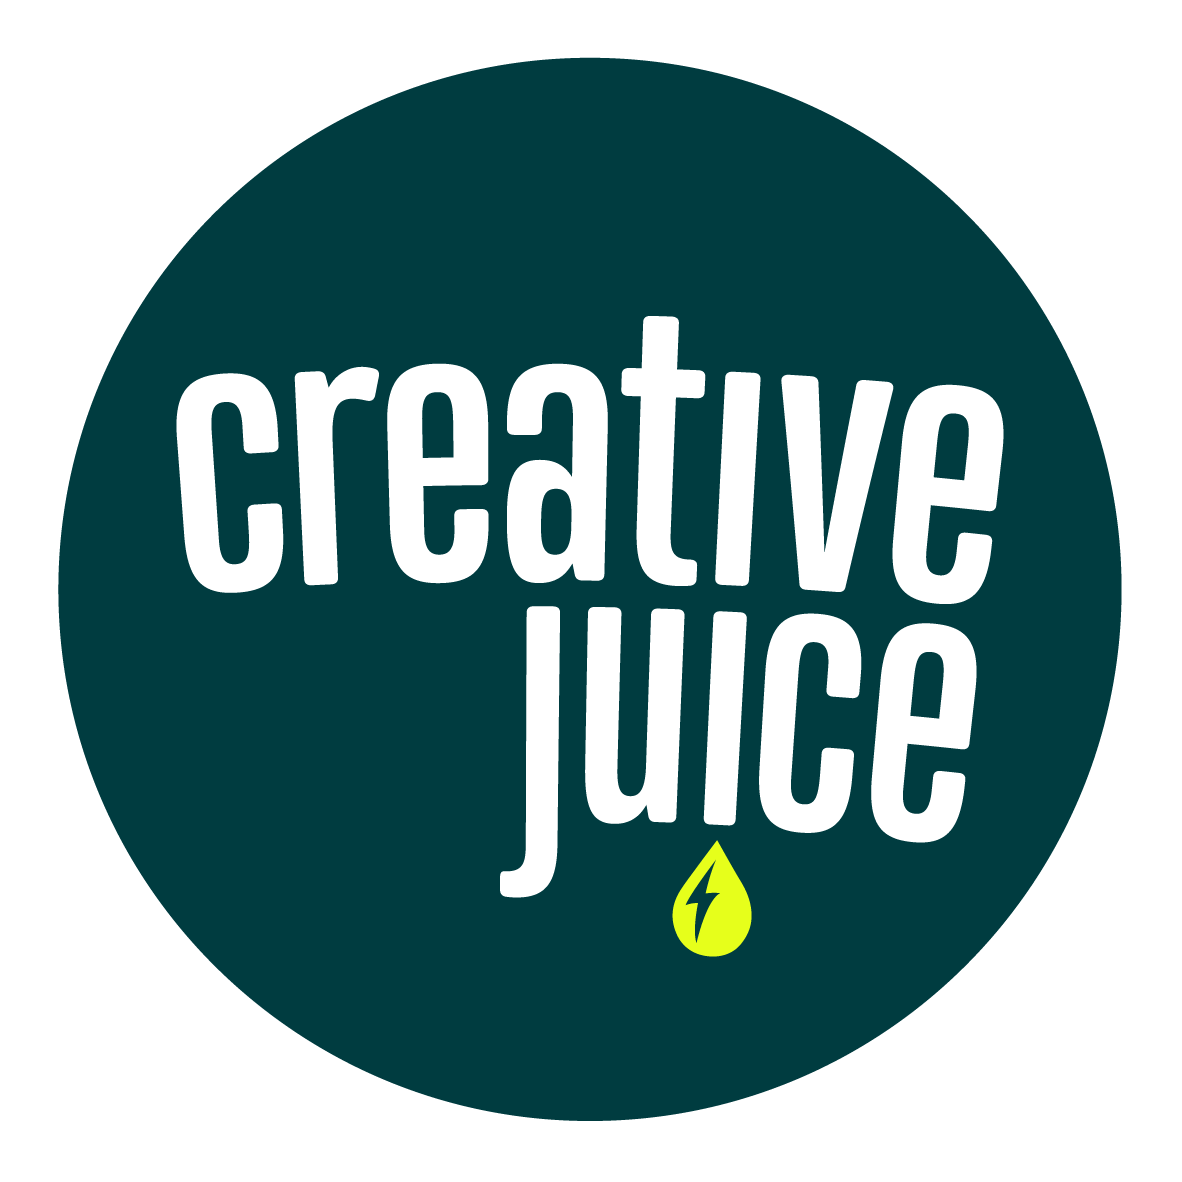 CreativeJuice-BADGE-green (1).png